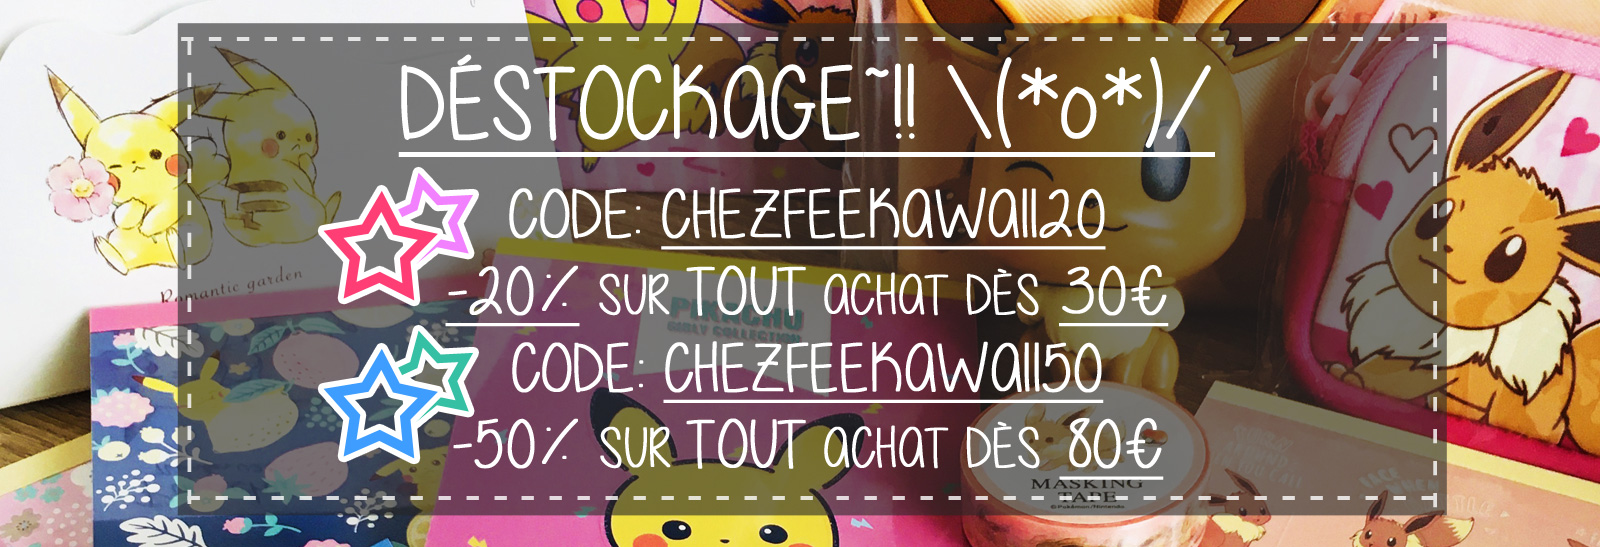 chezfee boutique kawaii slide show pokemon code promo slideshow destockage50